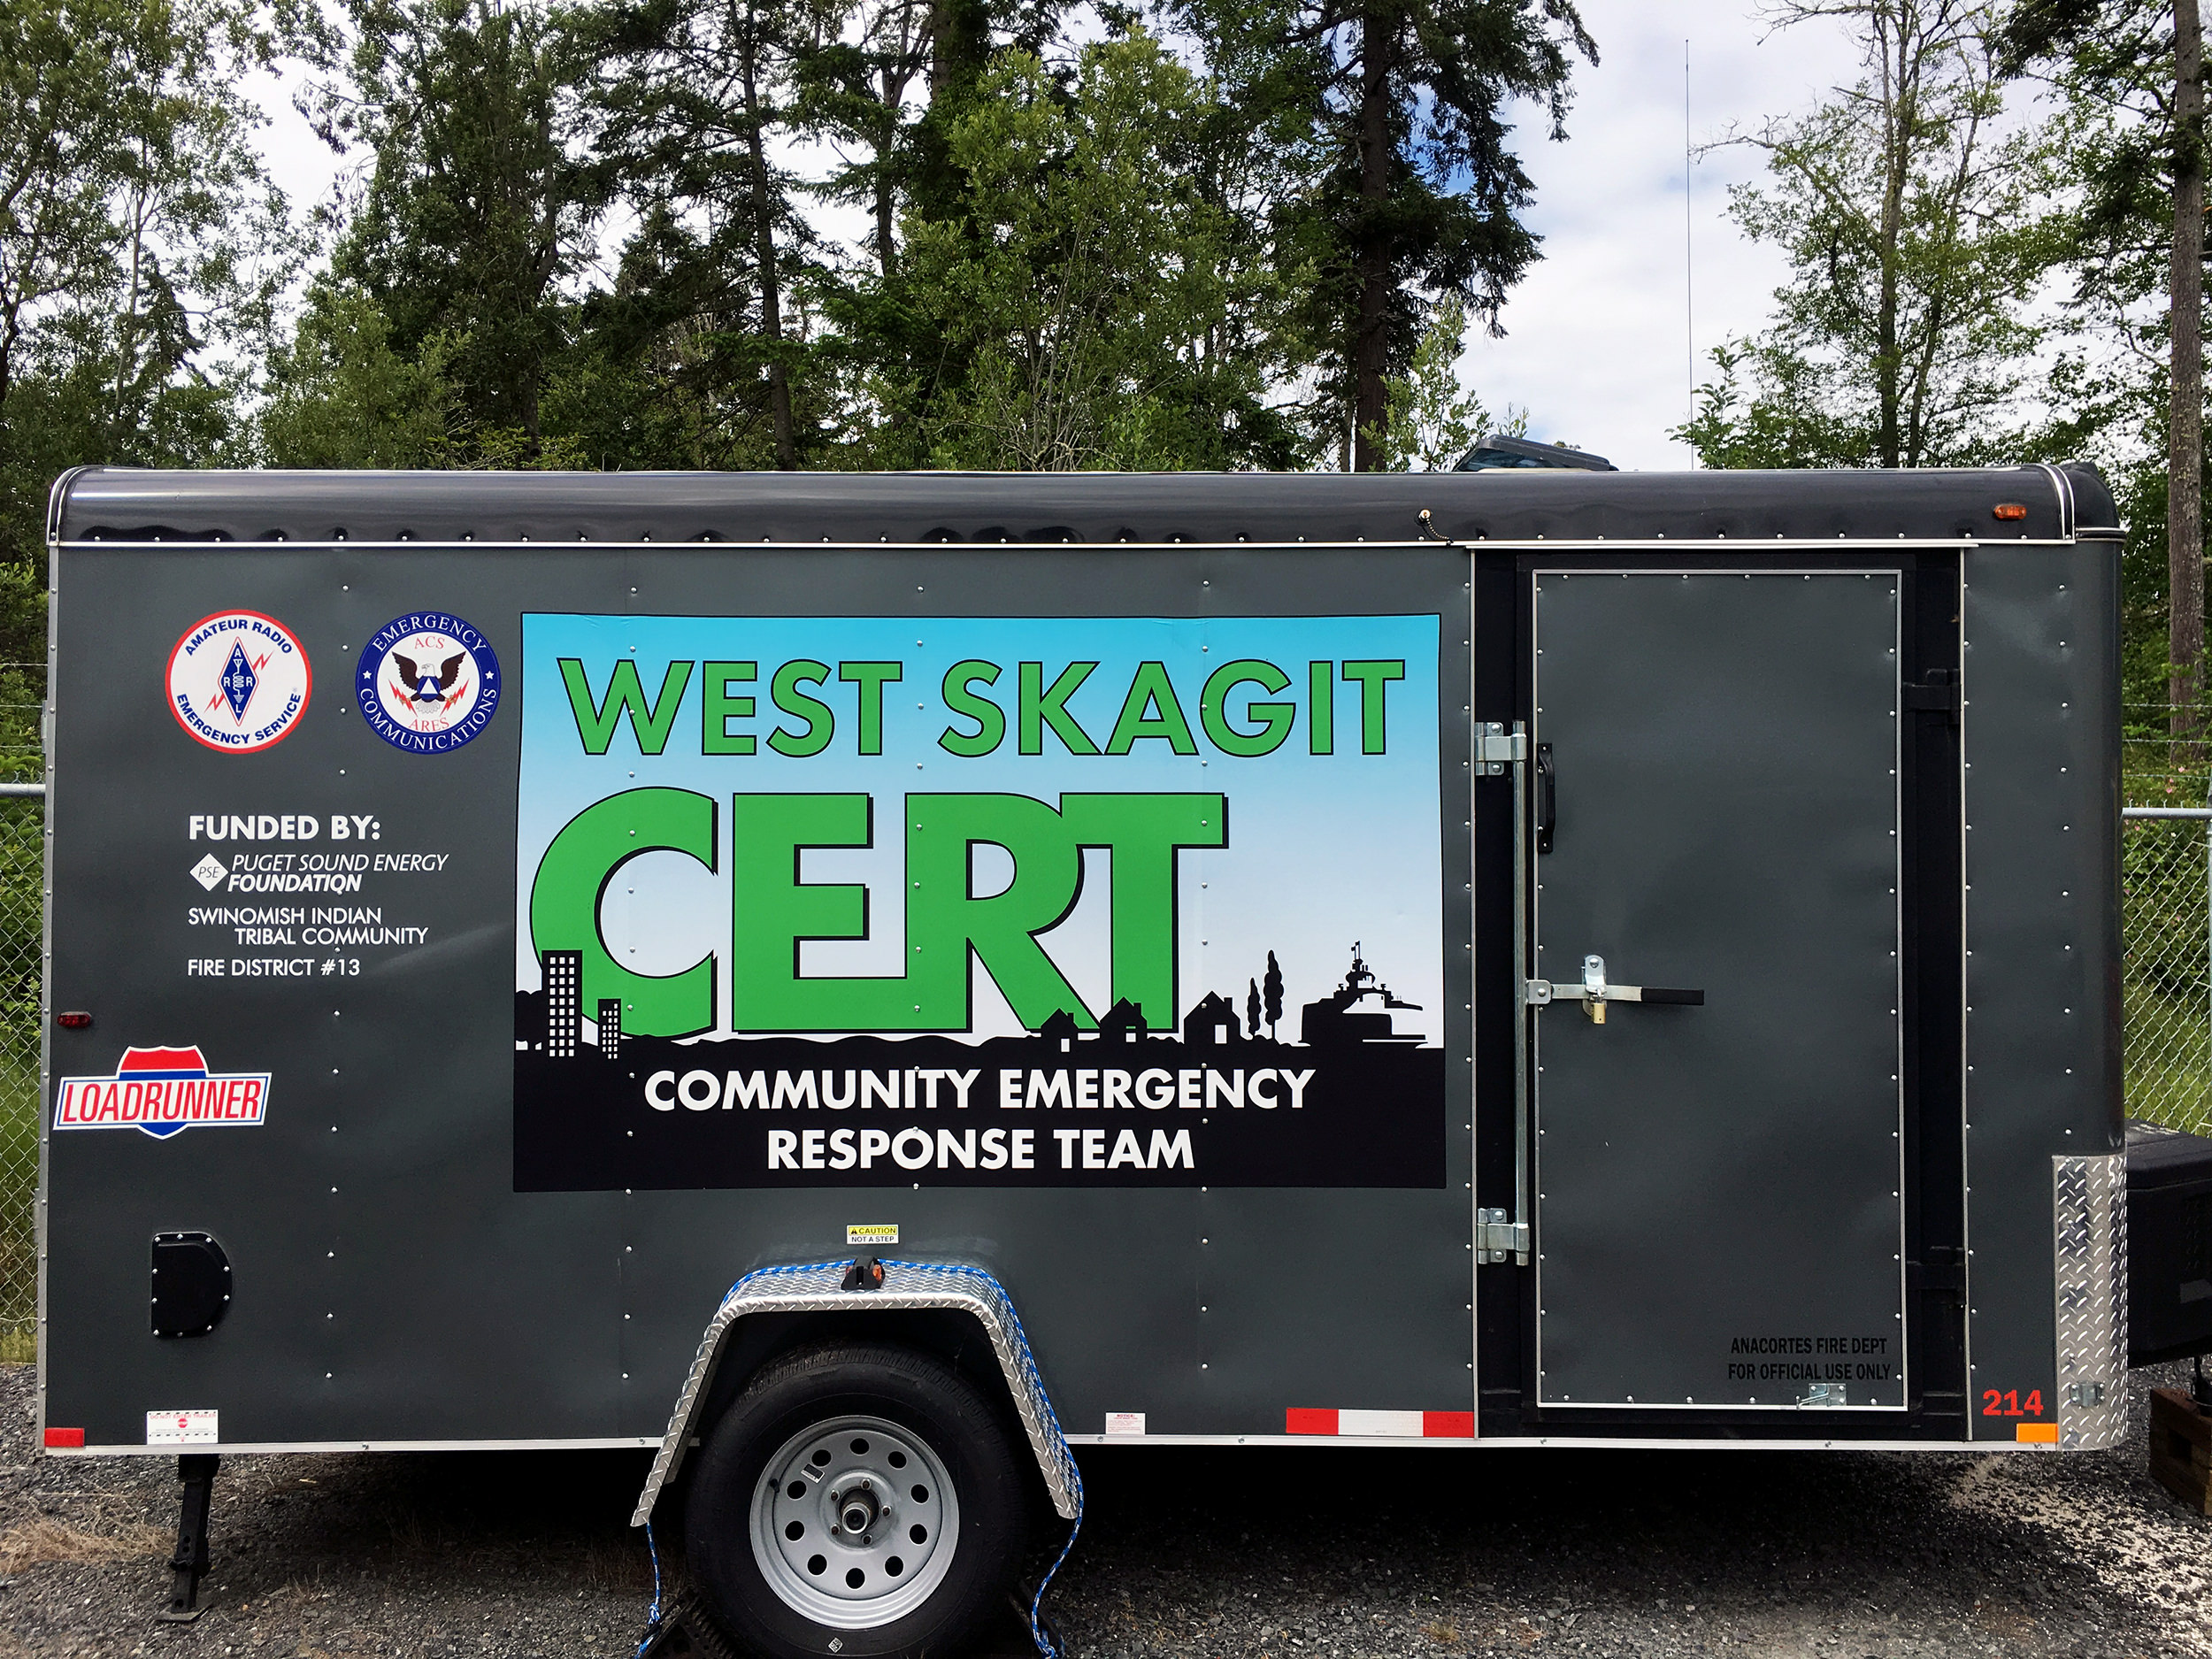 Community Emergency Response Team emergency response trailer